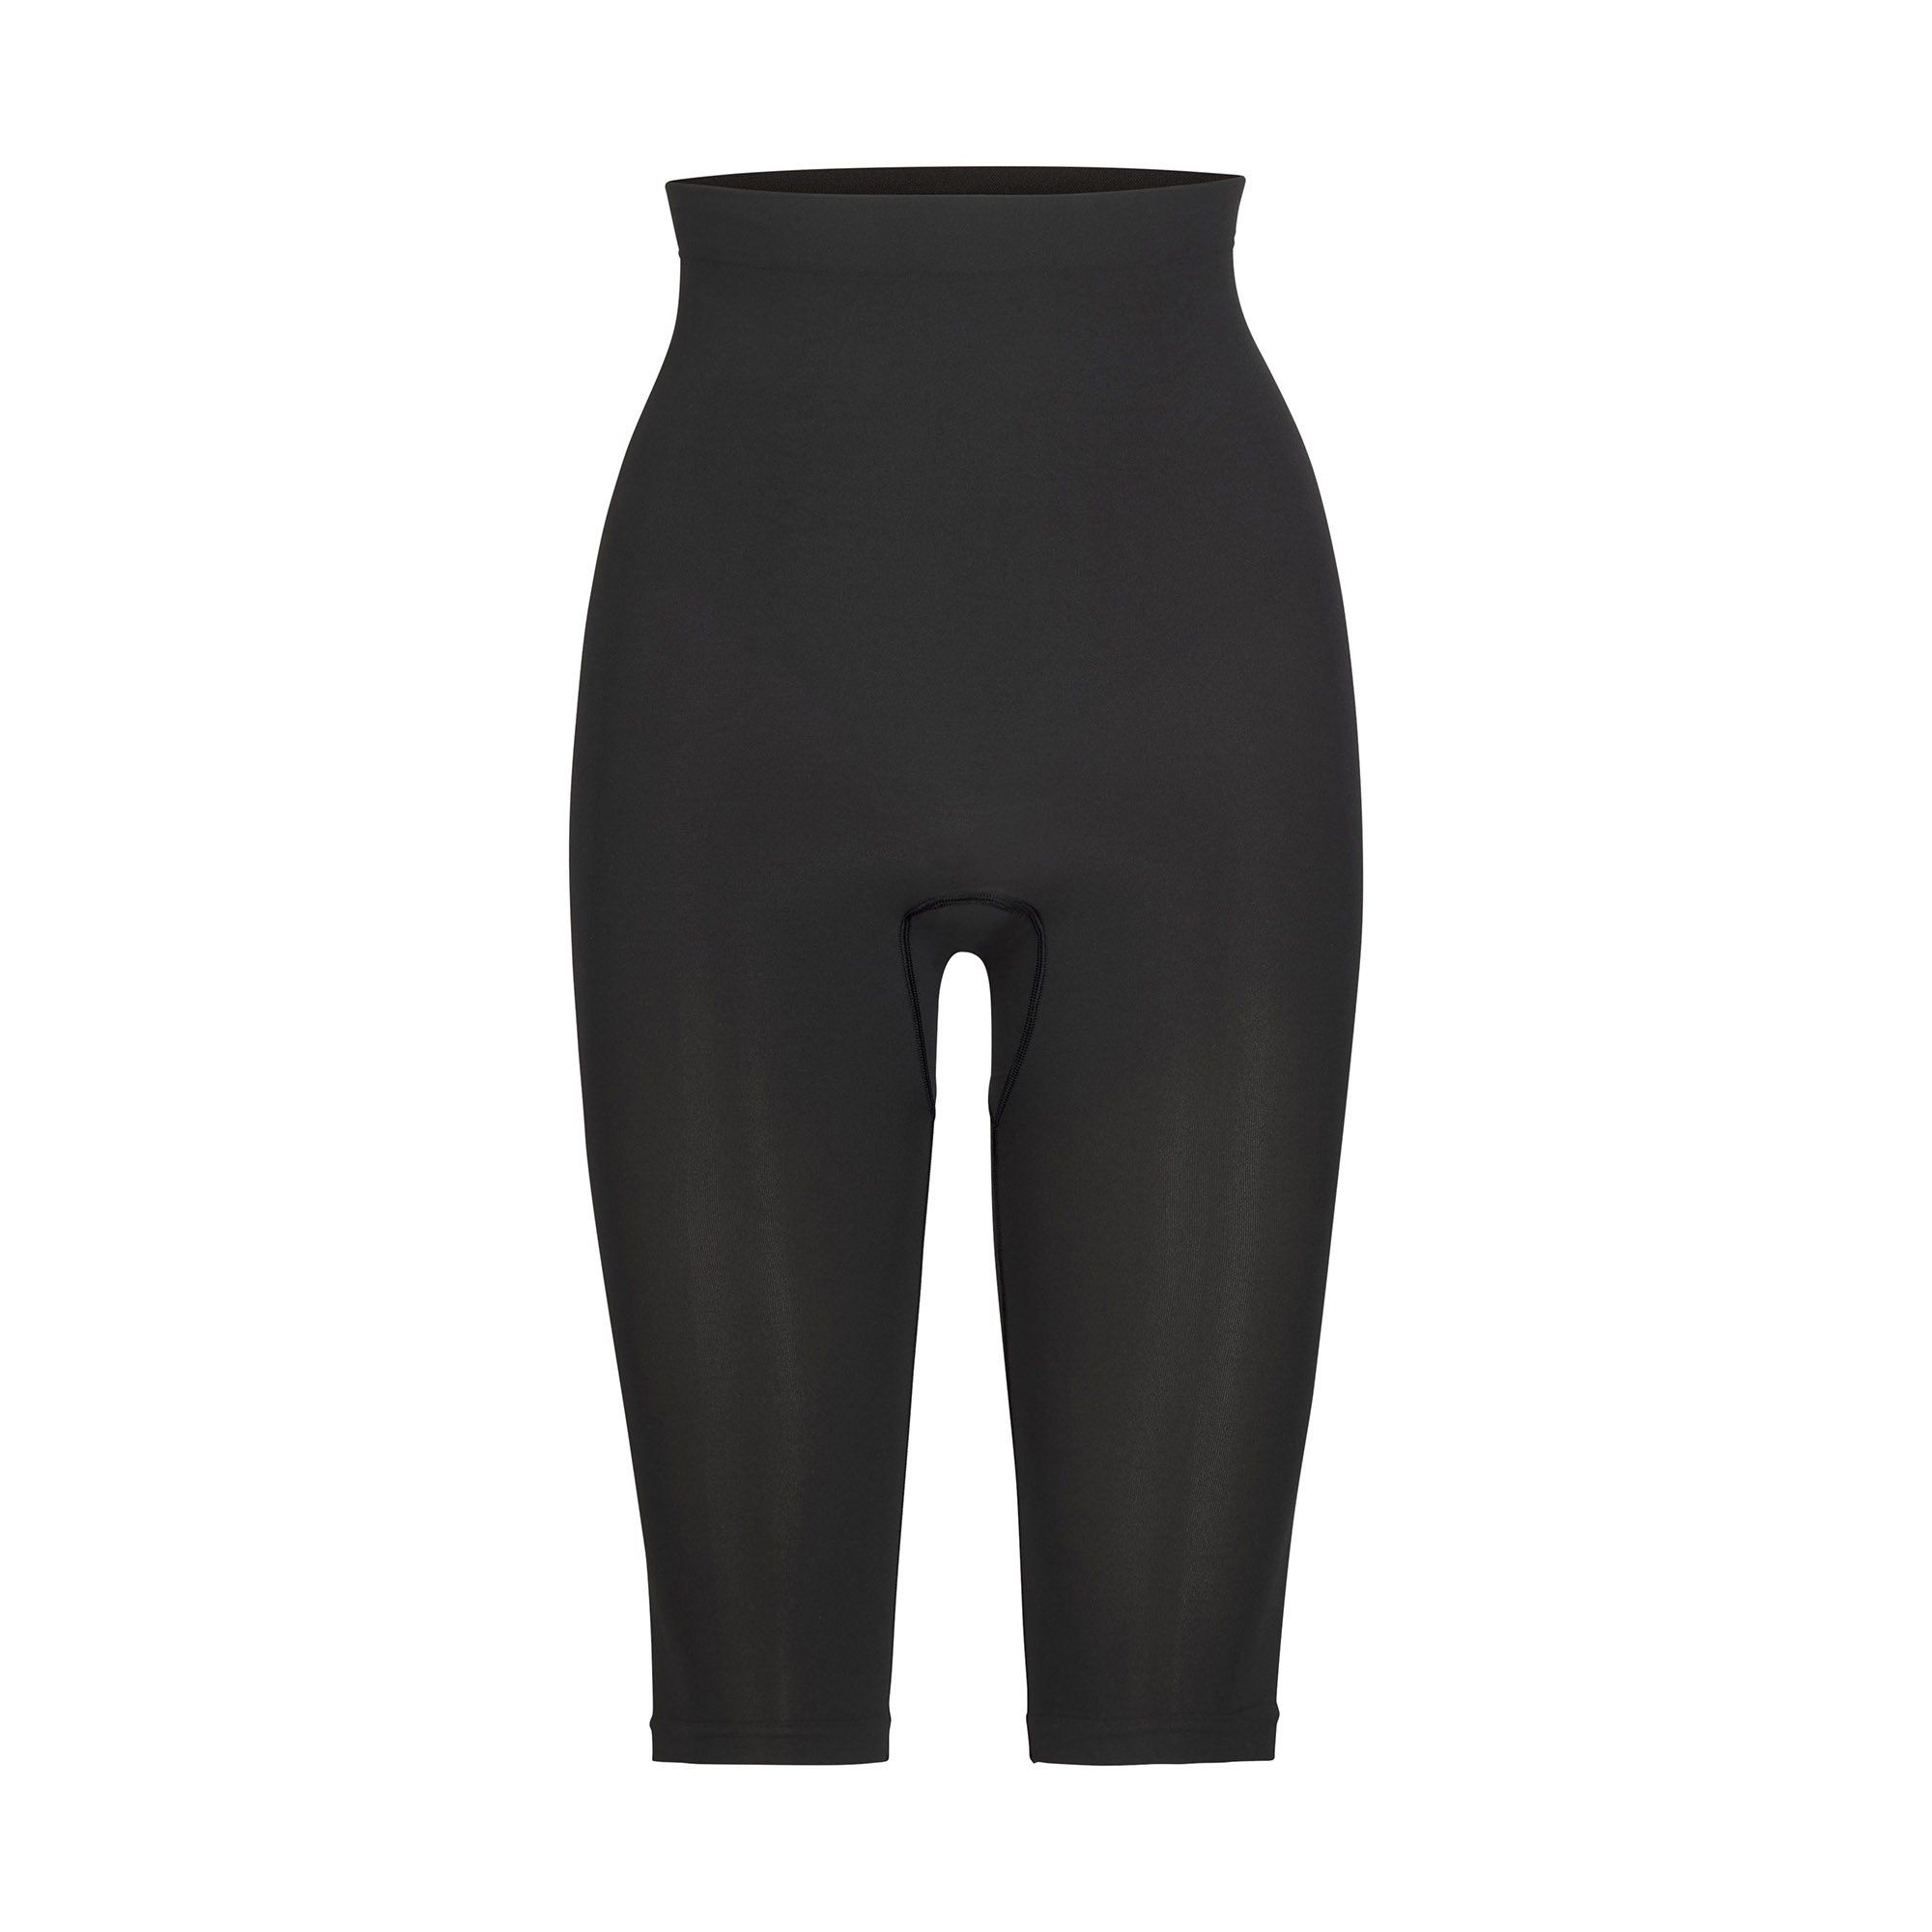 SKIMS Women's Sculpting Legging Below The Knee Sha